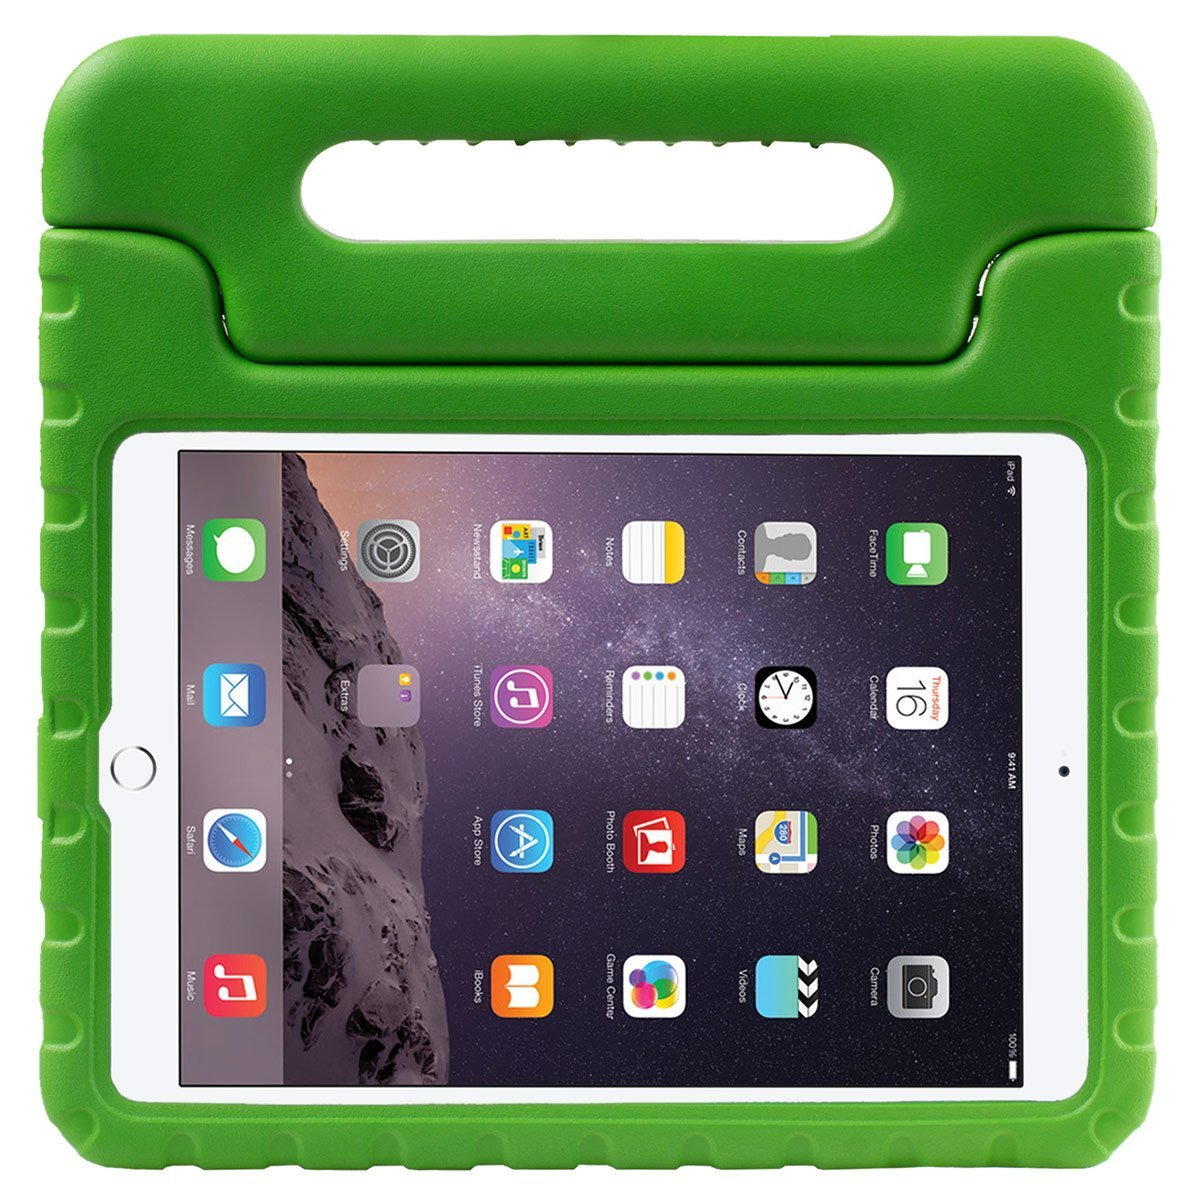 ipad cases for kids - armorbox kido case